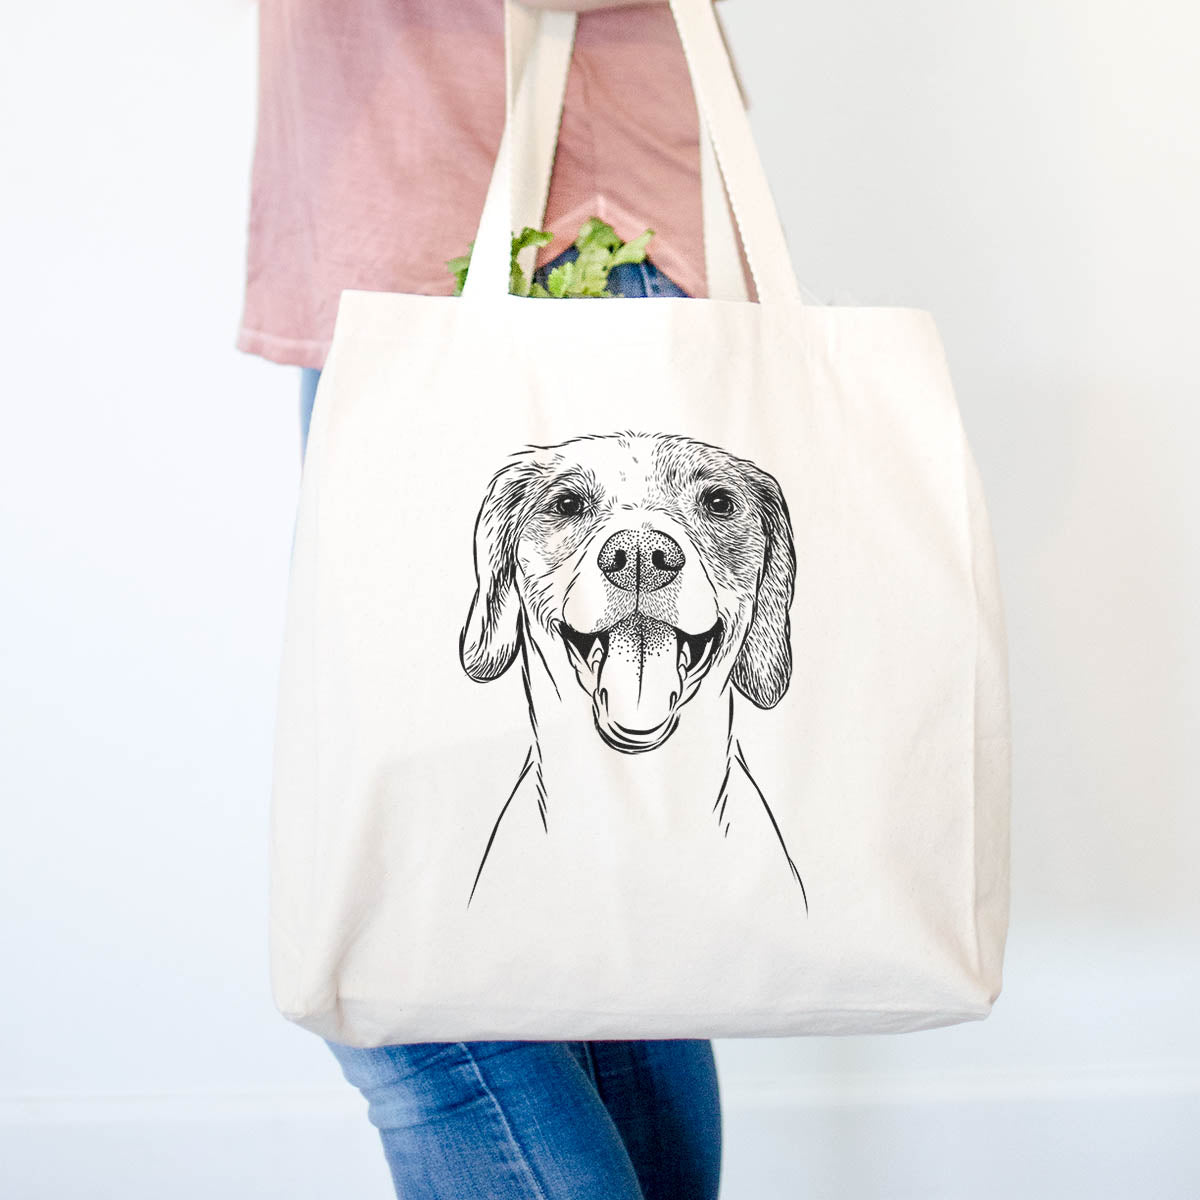 Obi the Beagle Mix - Tote Bag